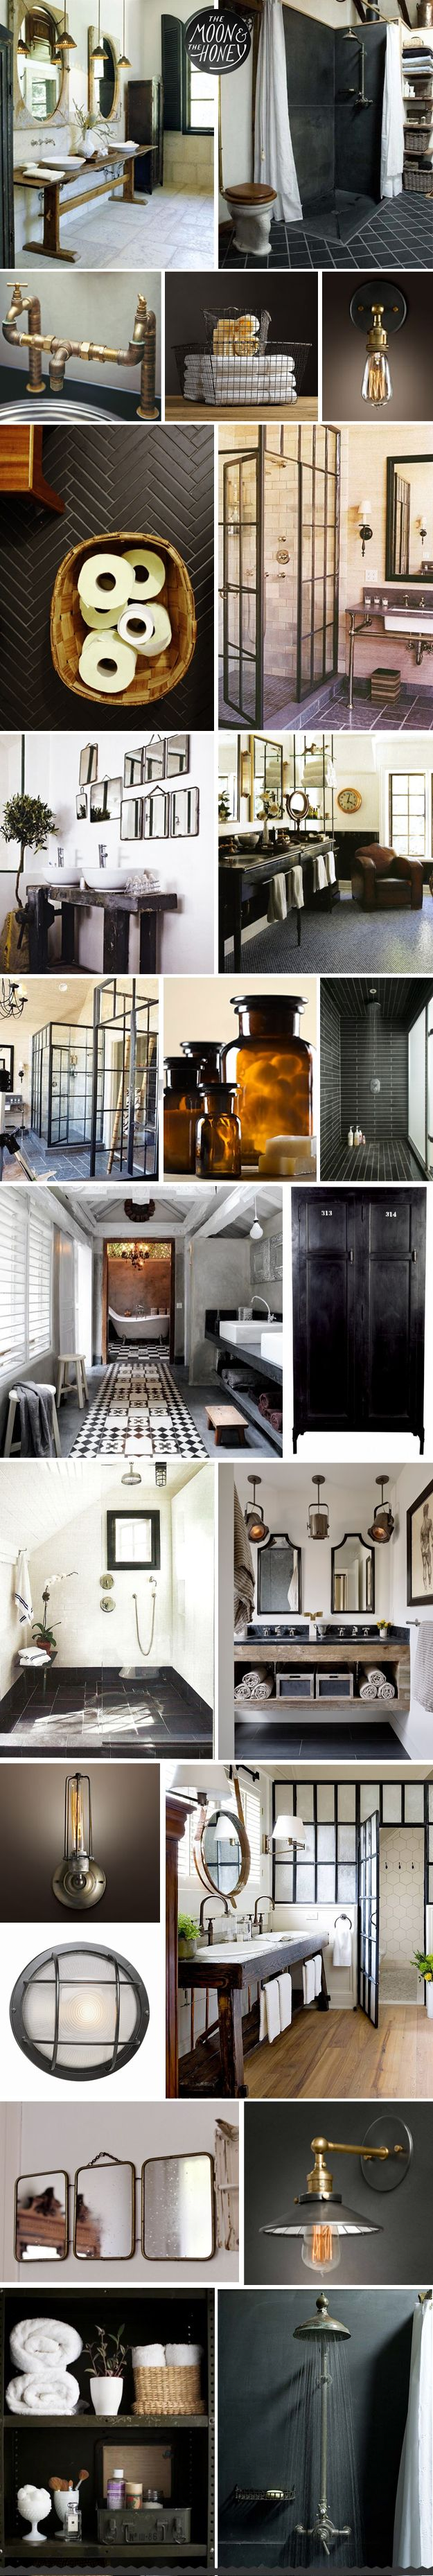 double sink, black shower, exposed pipes, basket, sconces, herringbone, iron shower, wood base, double sink, welded shower, glass jars, black tiles, patterned runner, towel cabinet, big shower, sinks, sconces, round sconce, bathroom, three mirrors, light, shelving, shower,